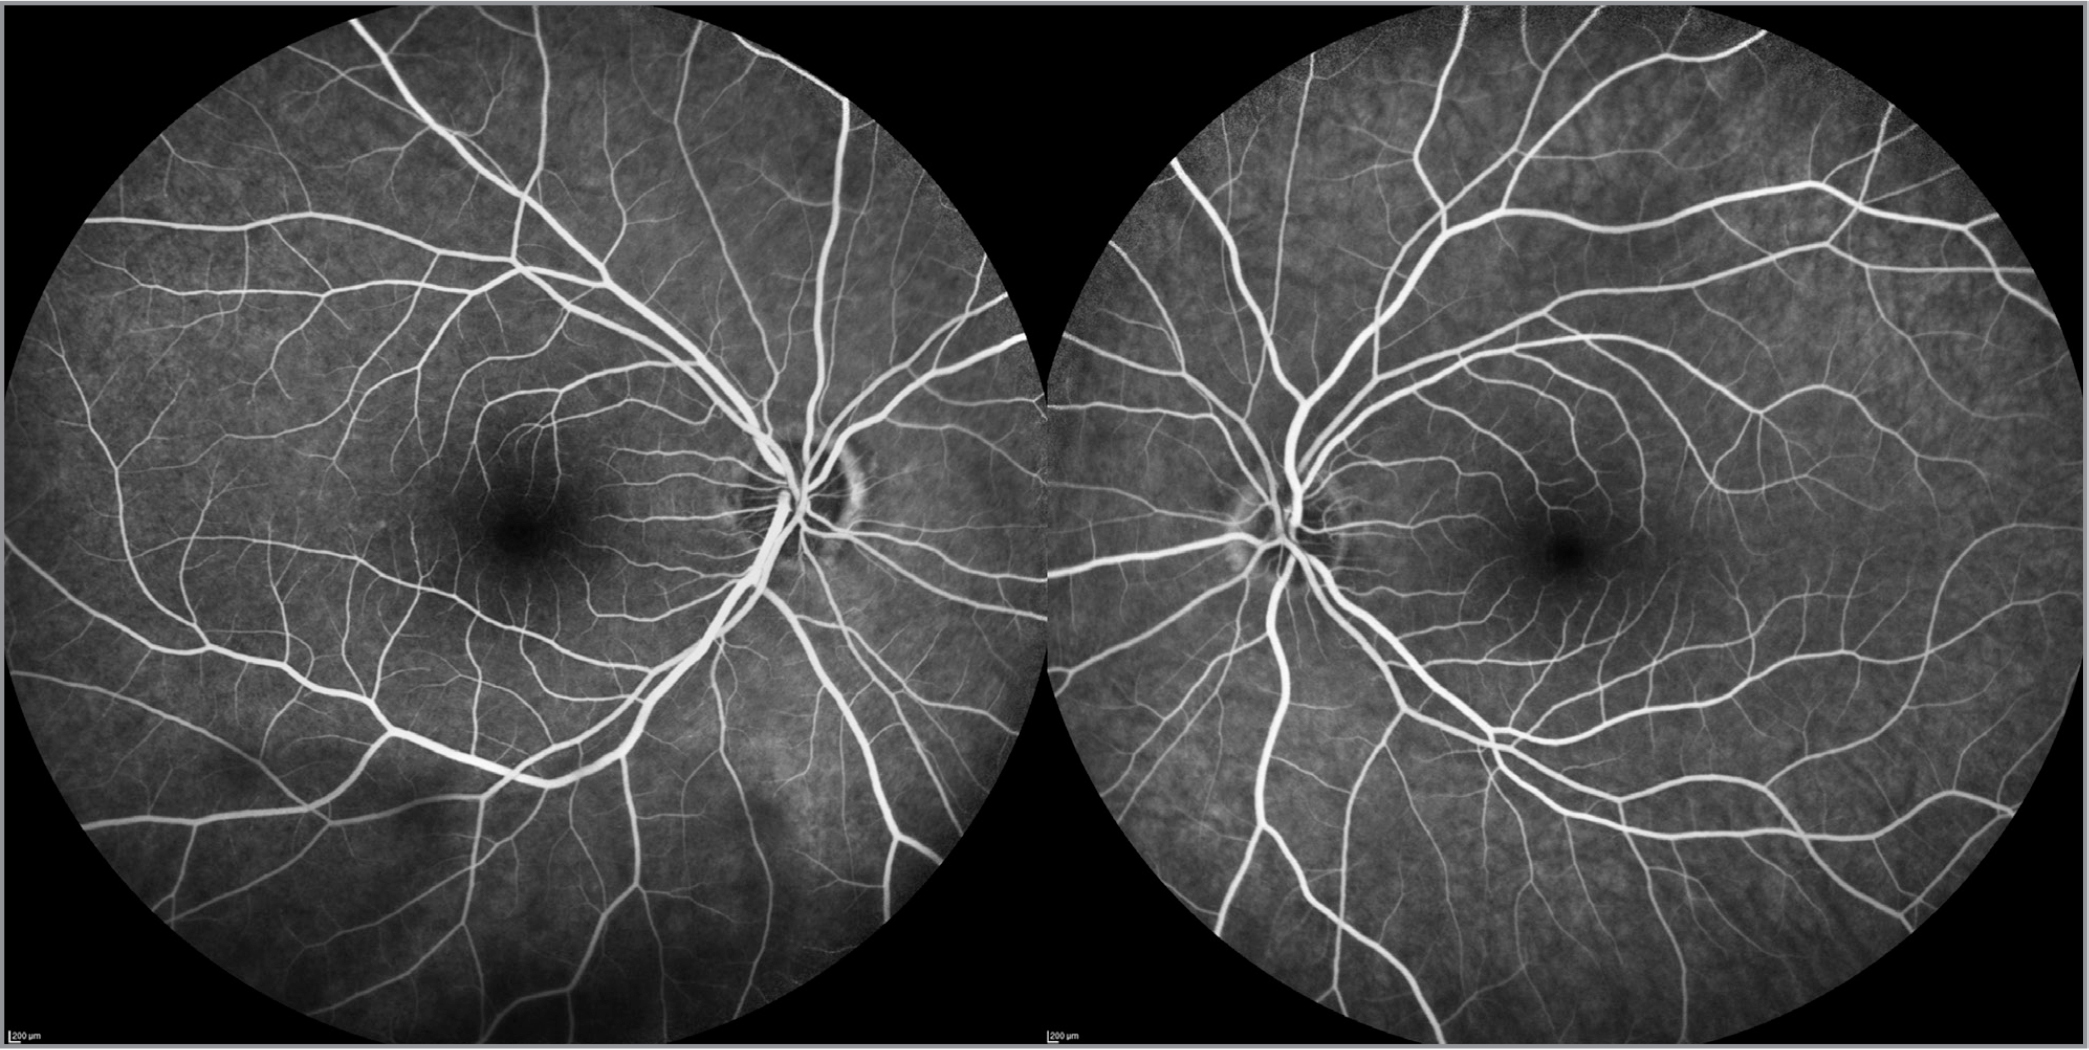 Late arterial phase fluorescein angiography at 55° acquired with scanning laser ophthalmoscopy shows normal retinal and choroidal perfusion of right (left panel) and left (right panel) eyes.